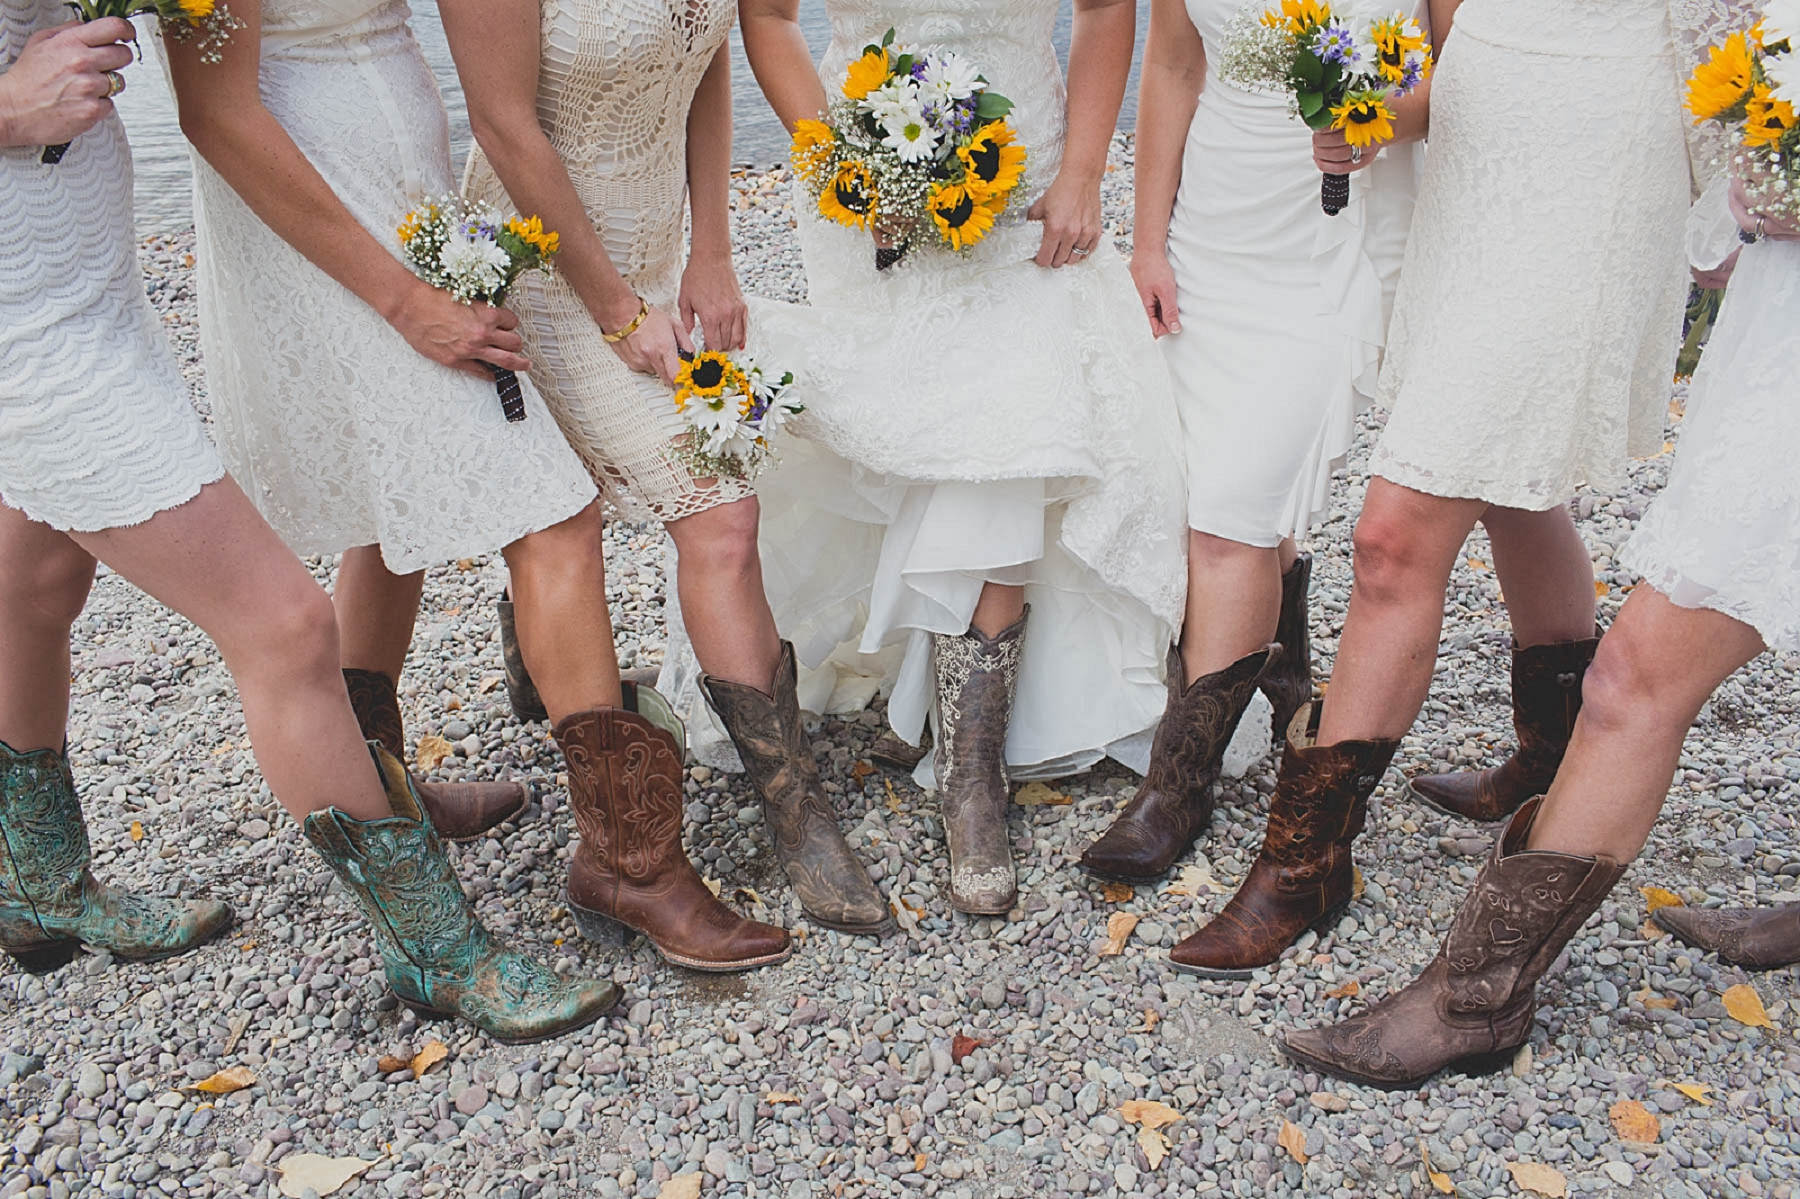 Jennifer_Mooney_photo_glacier_outdoor_center_wedding_montana_fall_elegant_rustic_romantic-94.jpg